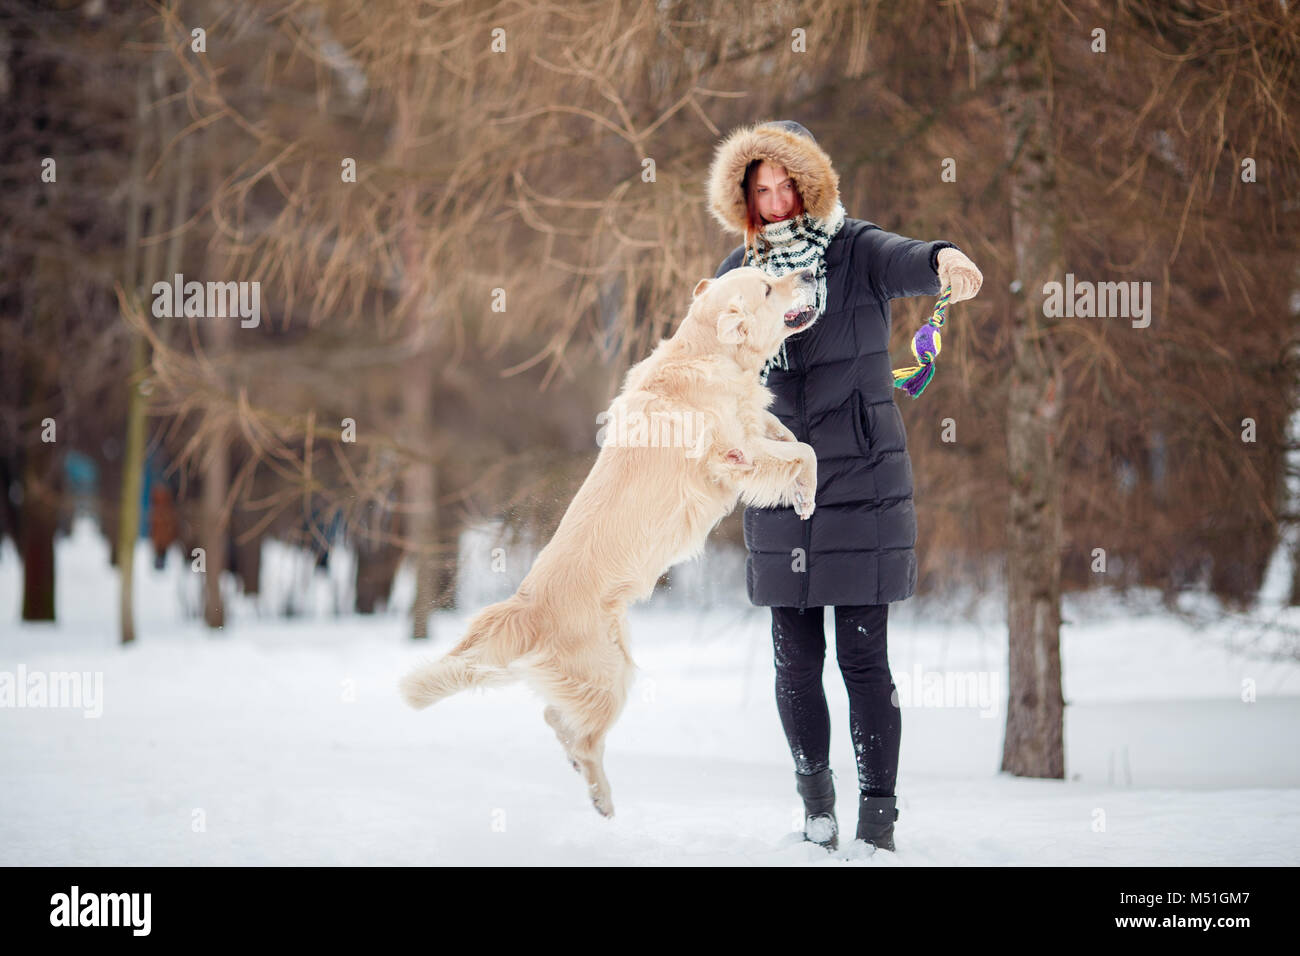 Image of woman playing with labrador in snowy park - Stock Image